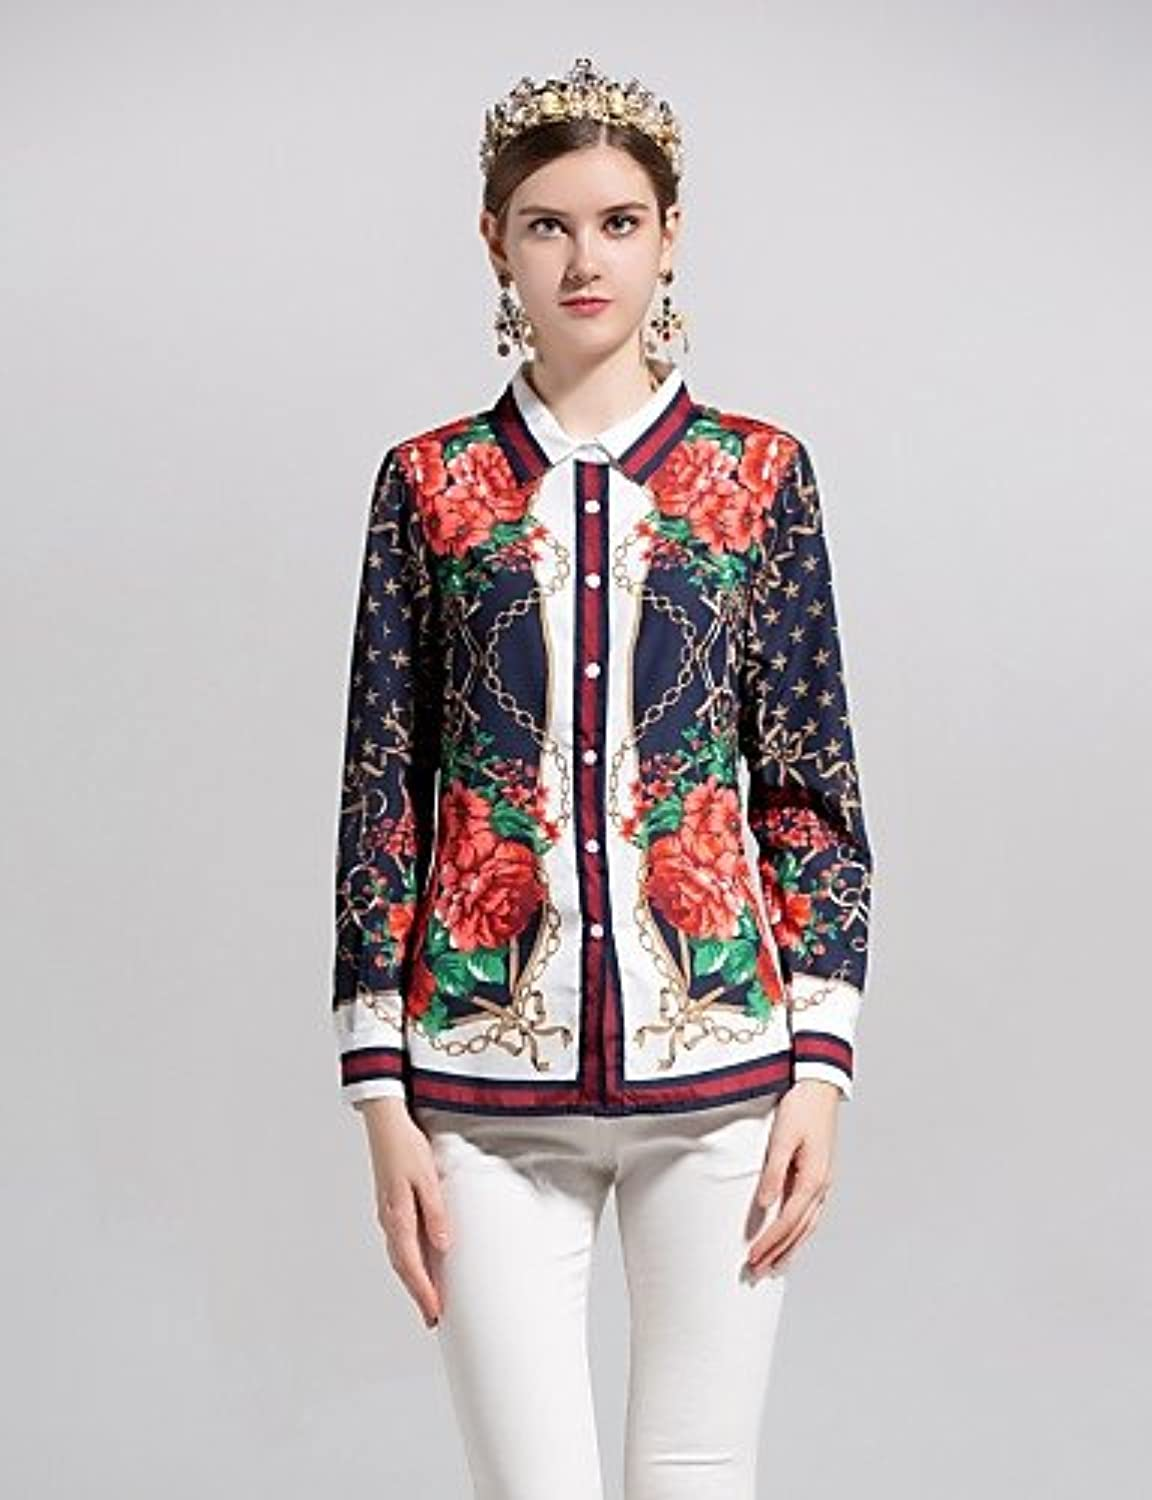 By Megyn Women's Active Basic Shirt  Solid colord Floral